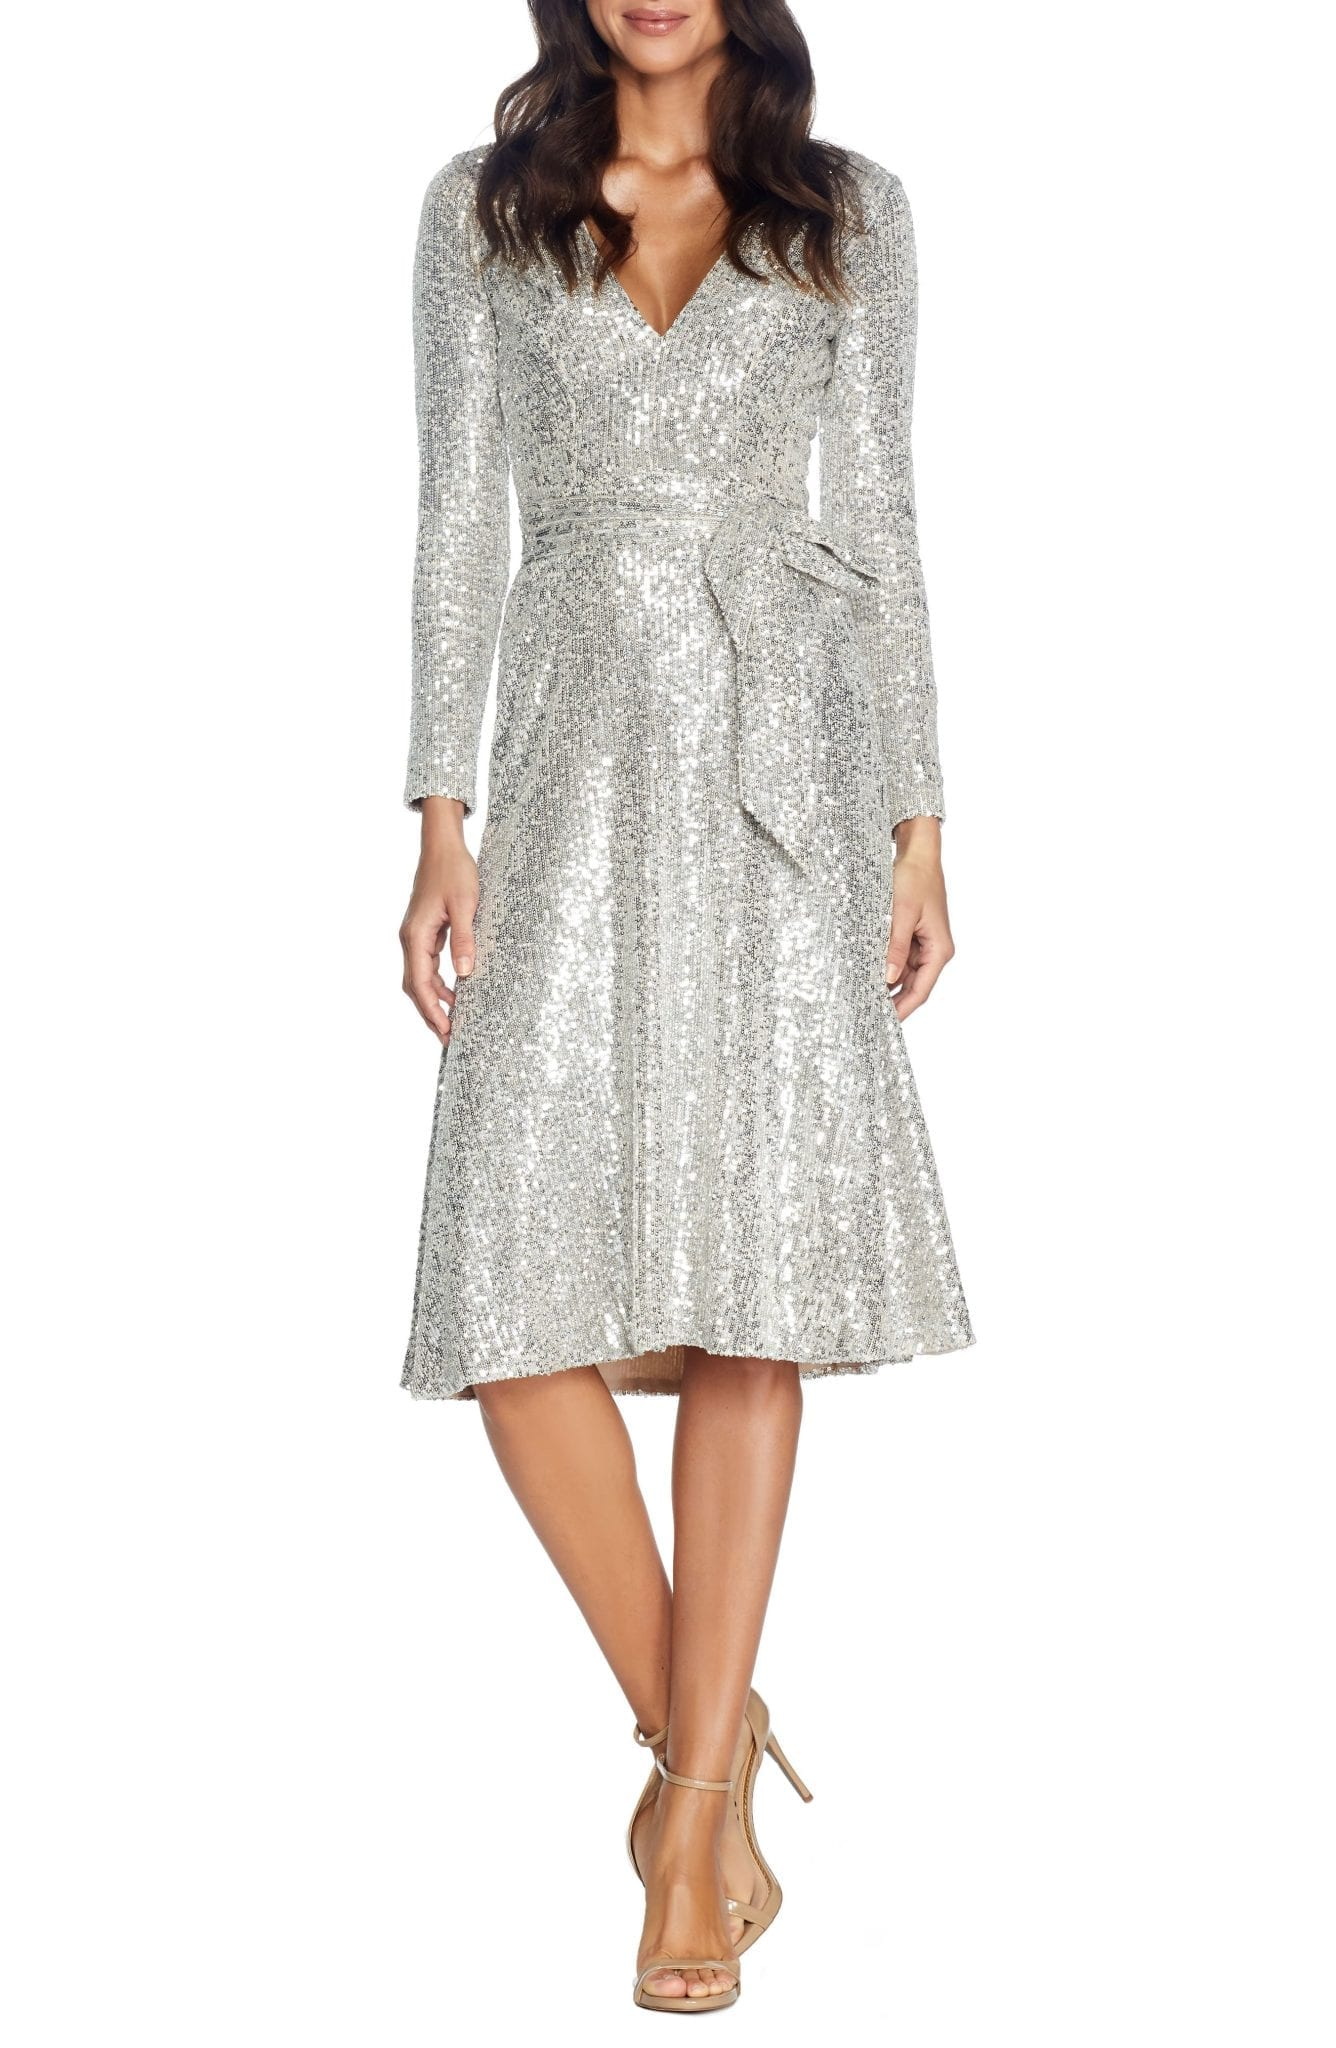 DRESS THE POPULATION Daphne Long Sleeve Sequin Cocktail Dress